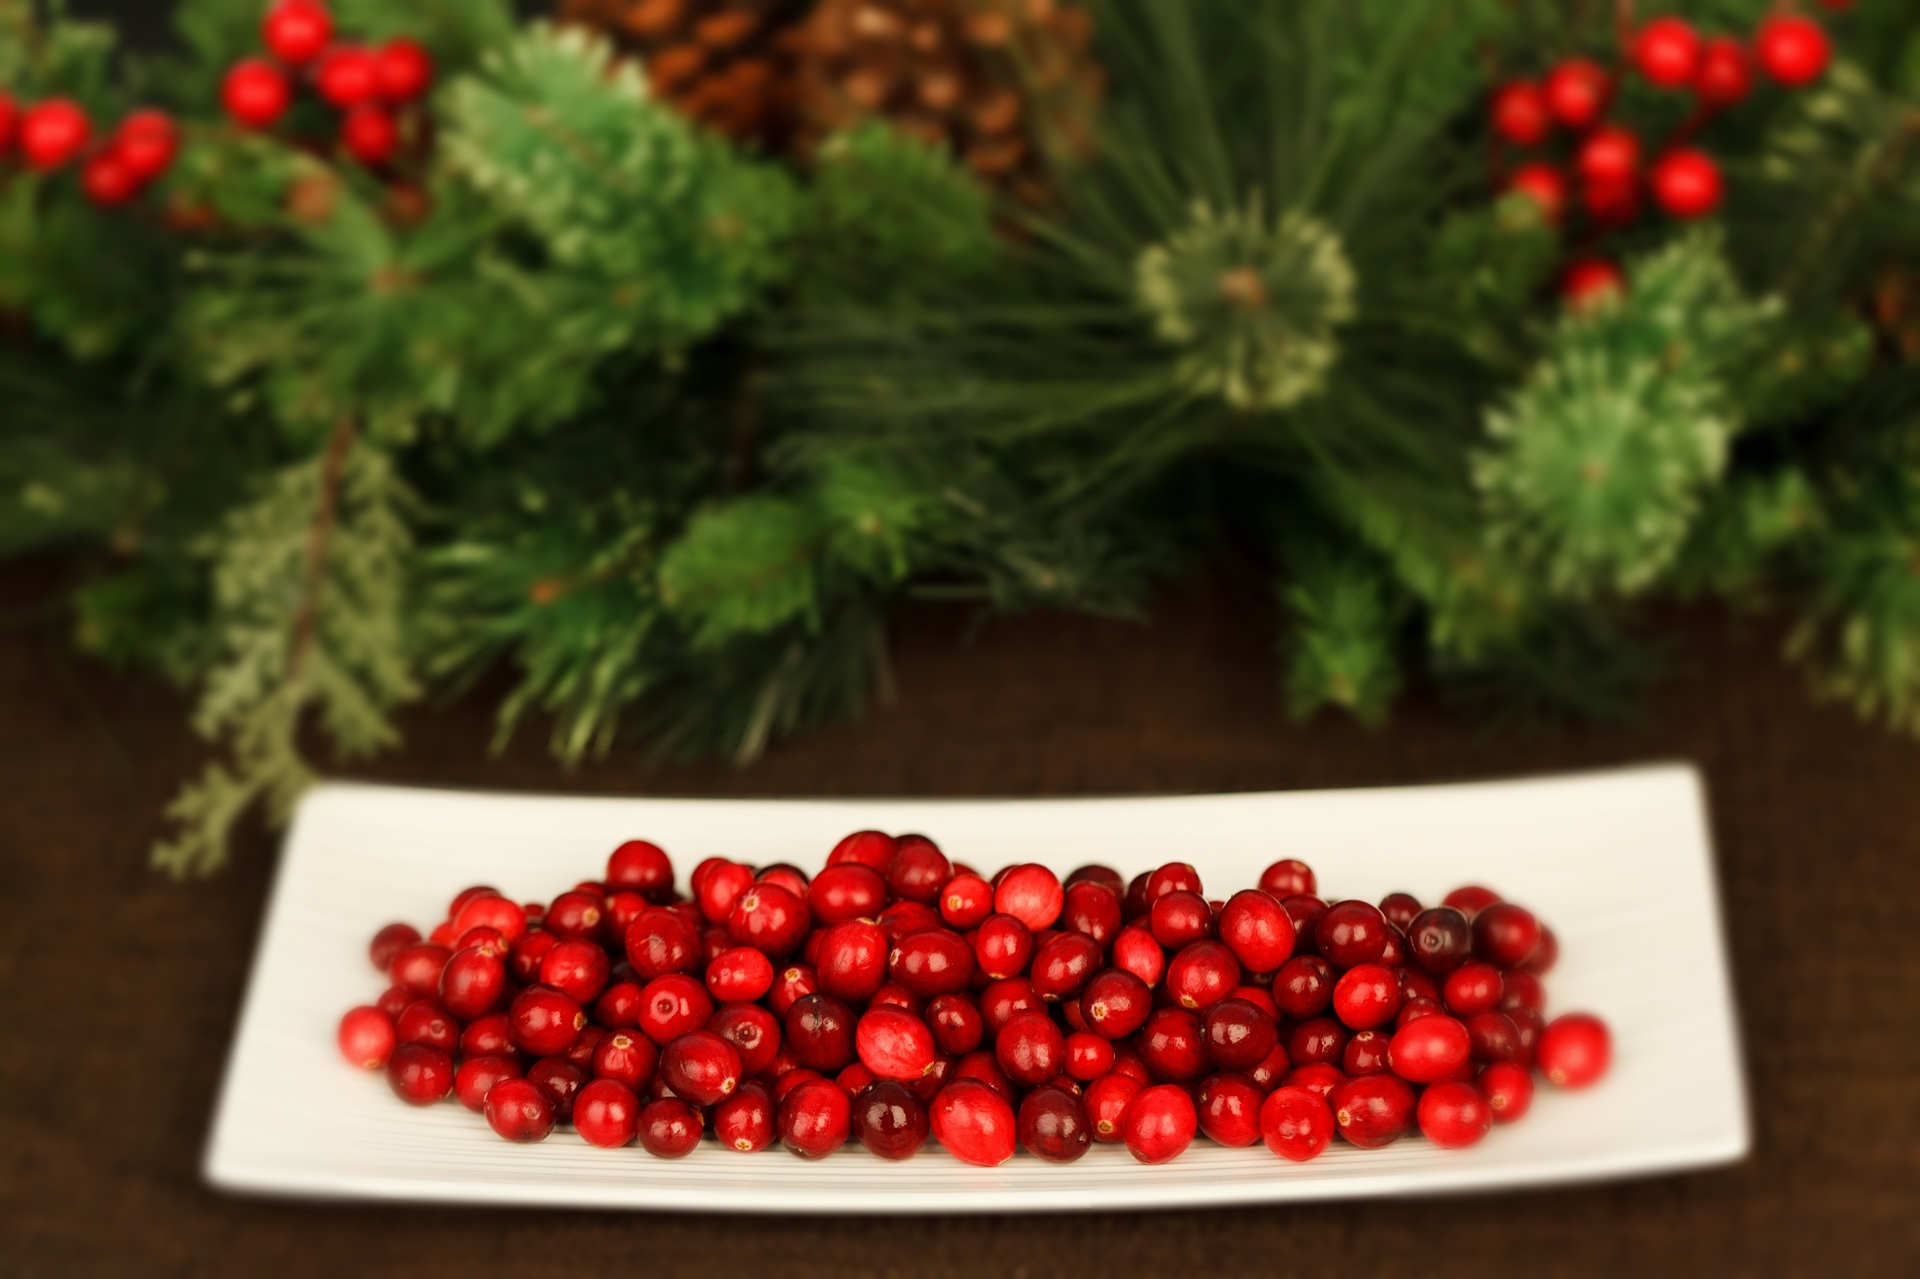 Cranberries: Fall in Love with This Powerful Red Fruit